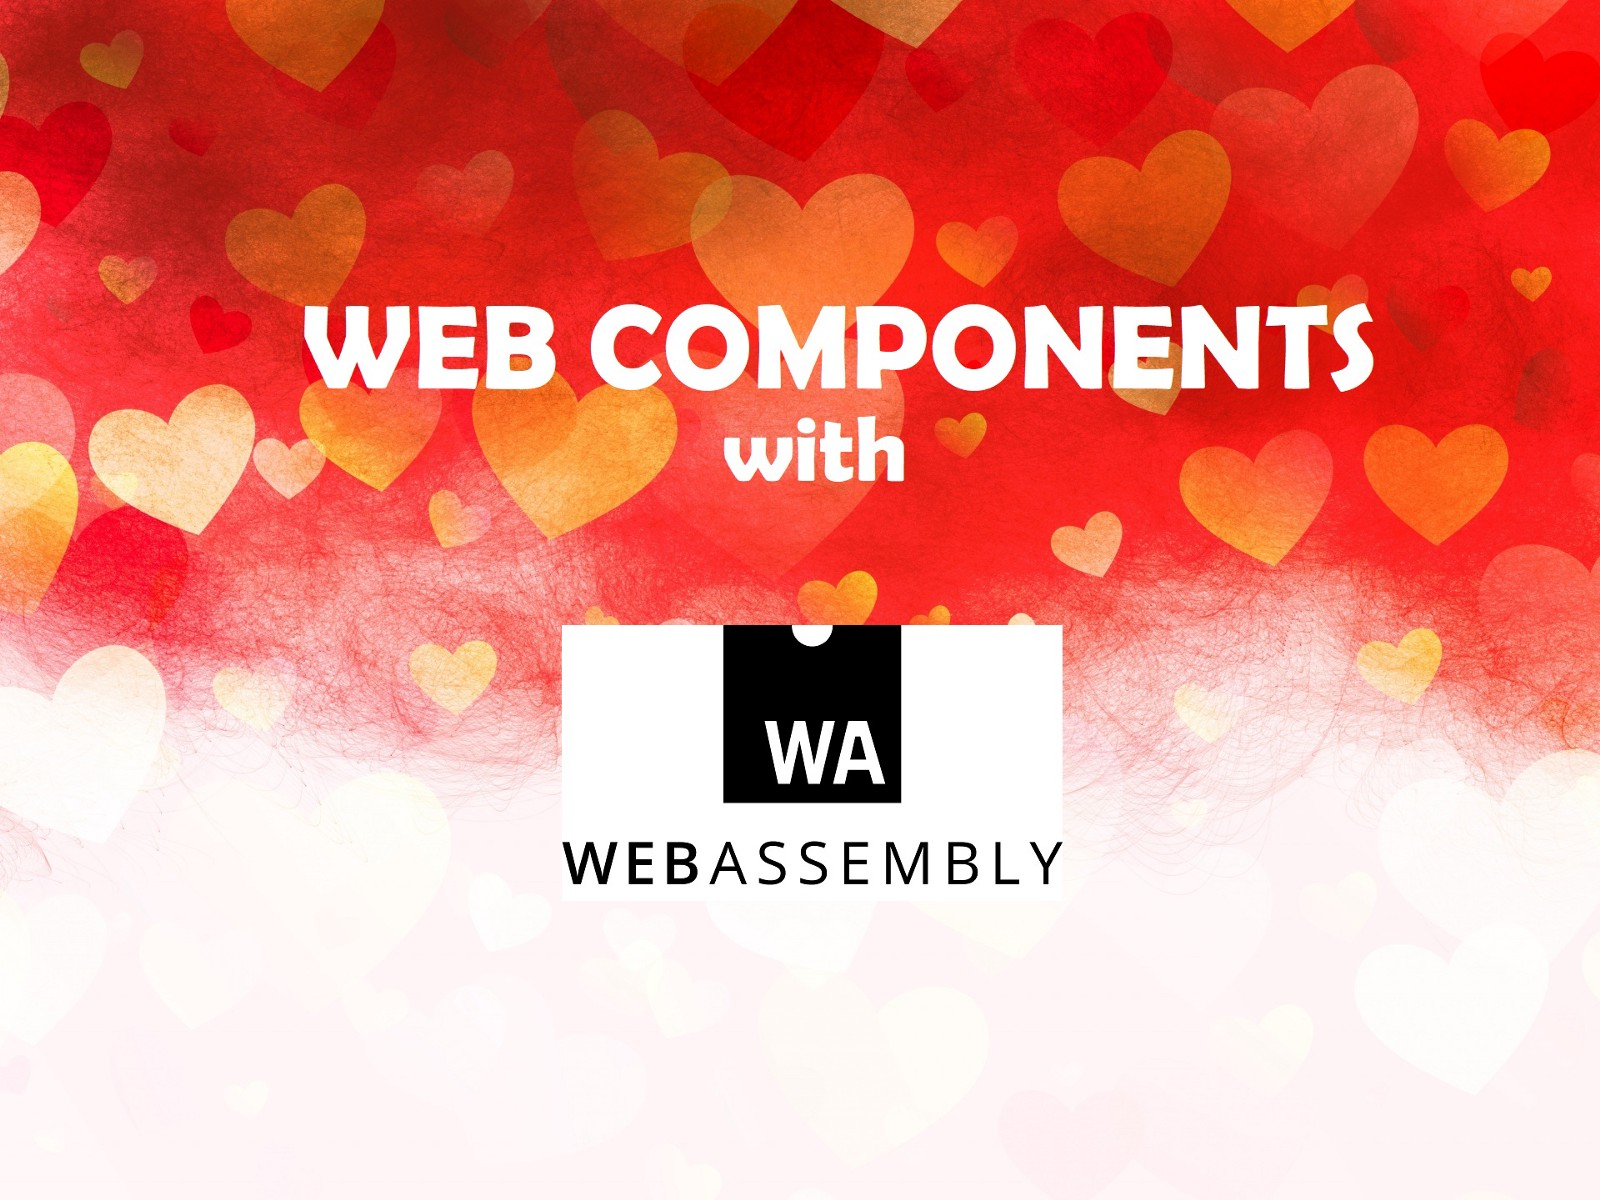 Develop W3C Web Components with WebAssembly